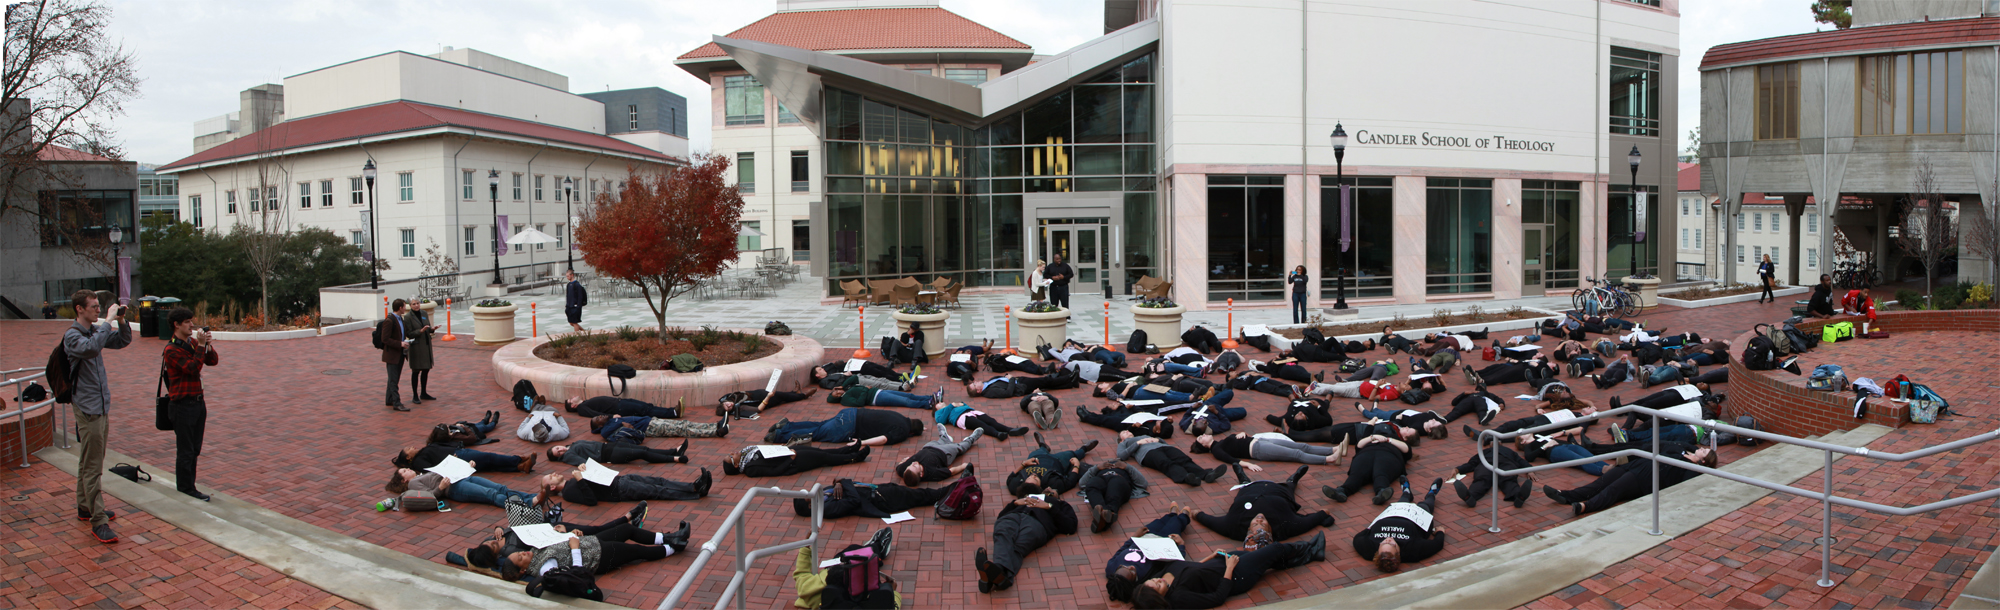 black-lives-matter-emory-protest-009.jpg